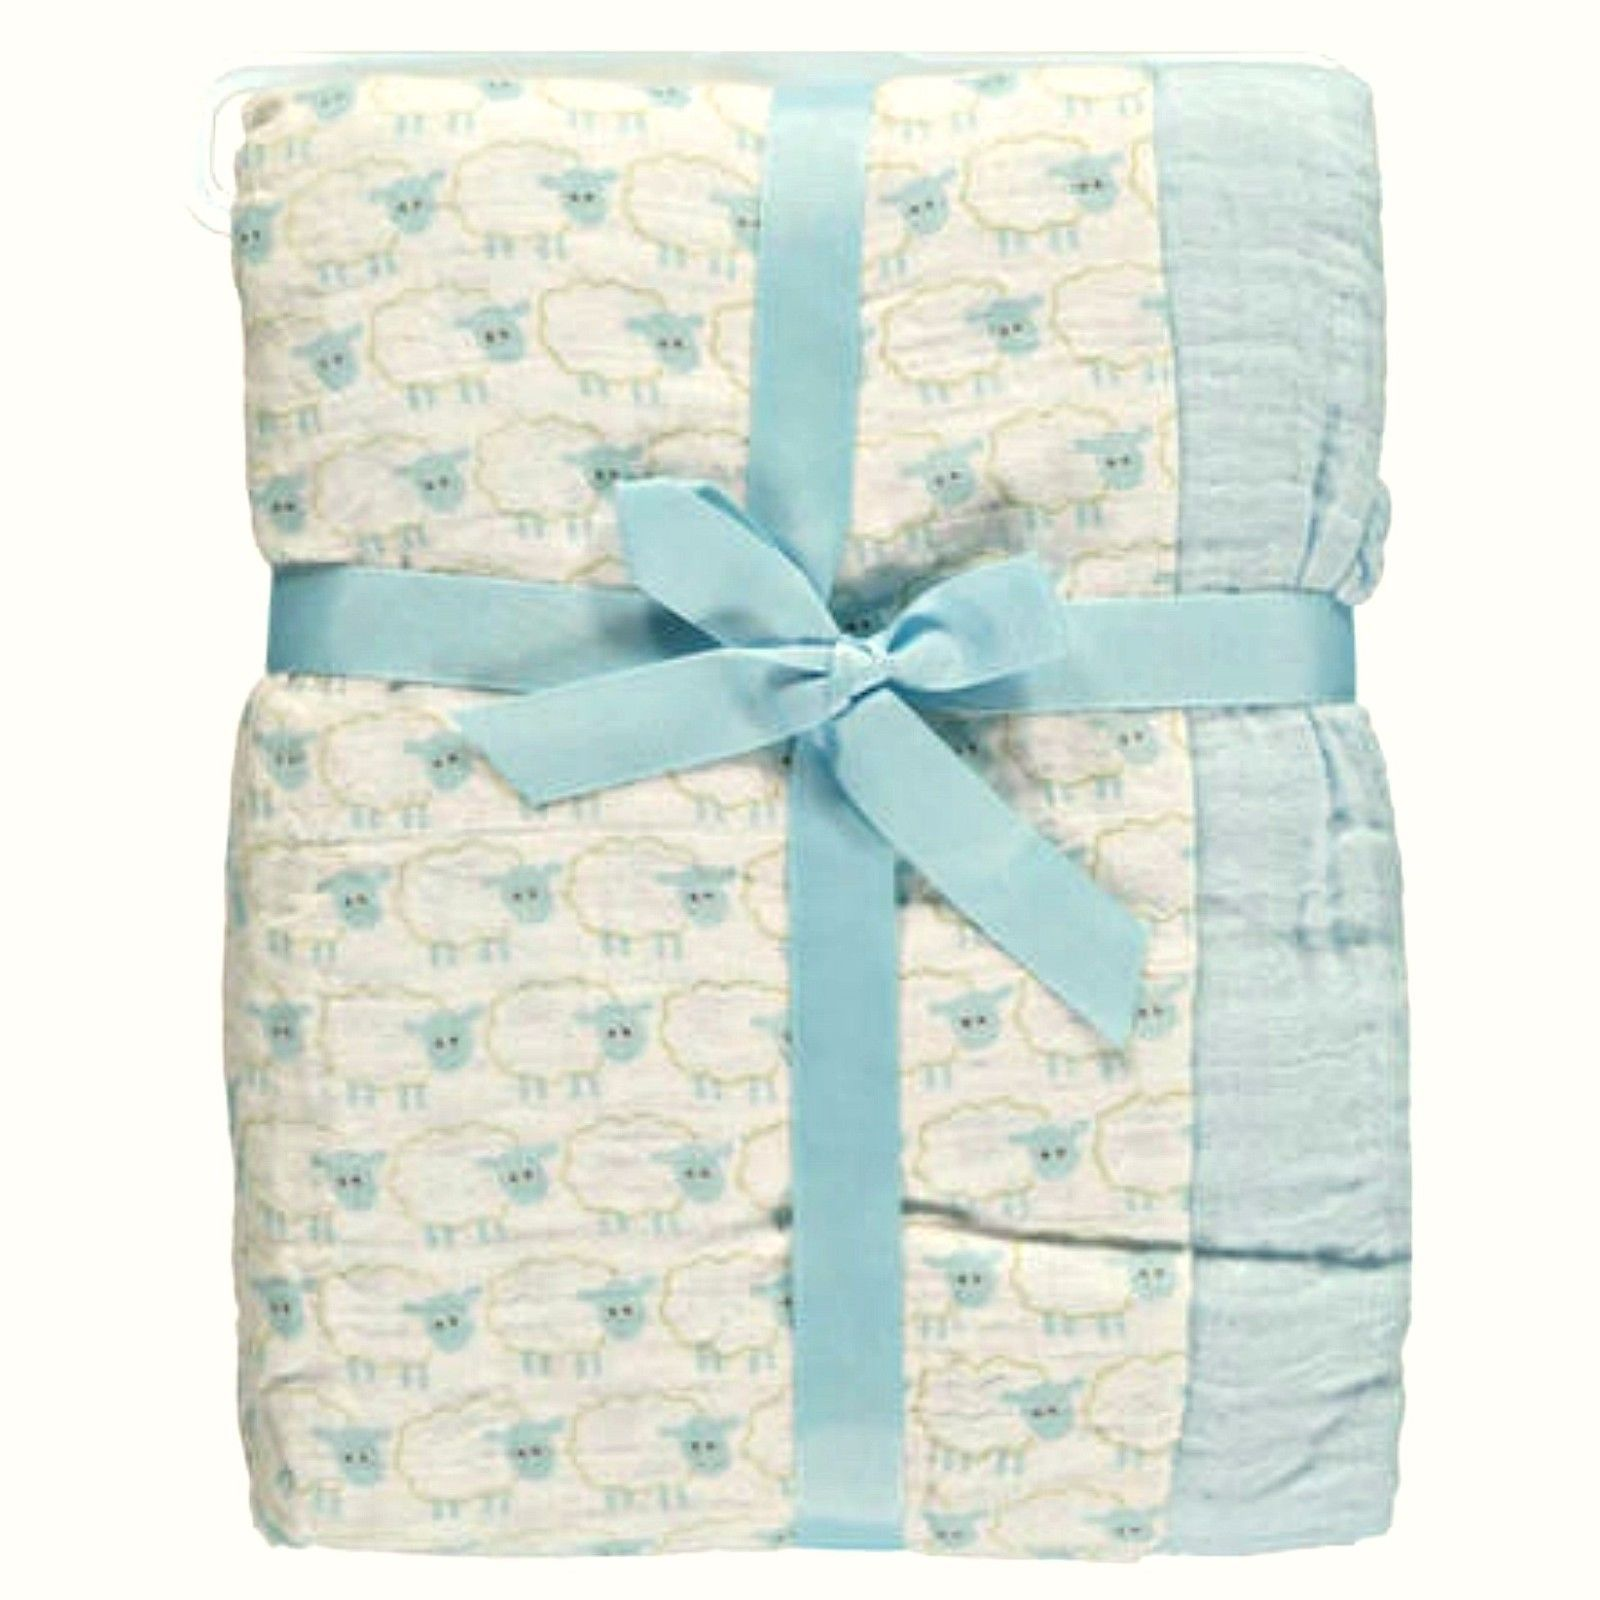 Primary image for Hudson Baby Two Swaddle Blankets Blue Sheep Cotton Muslin 46 x 46 inches